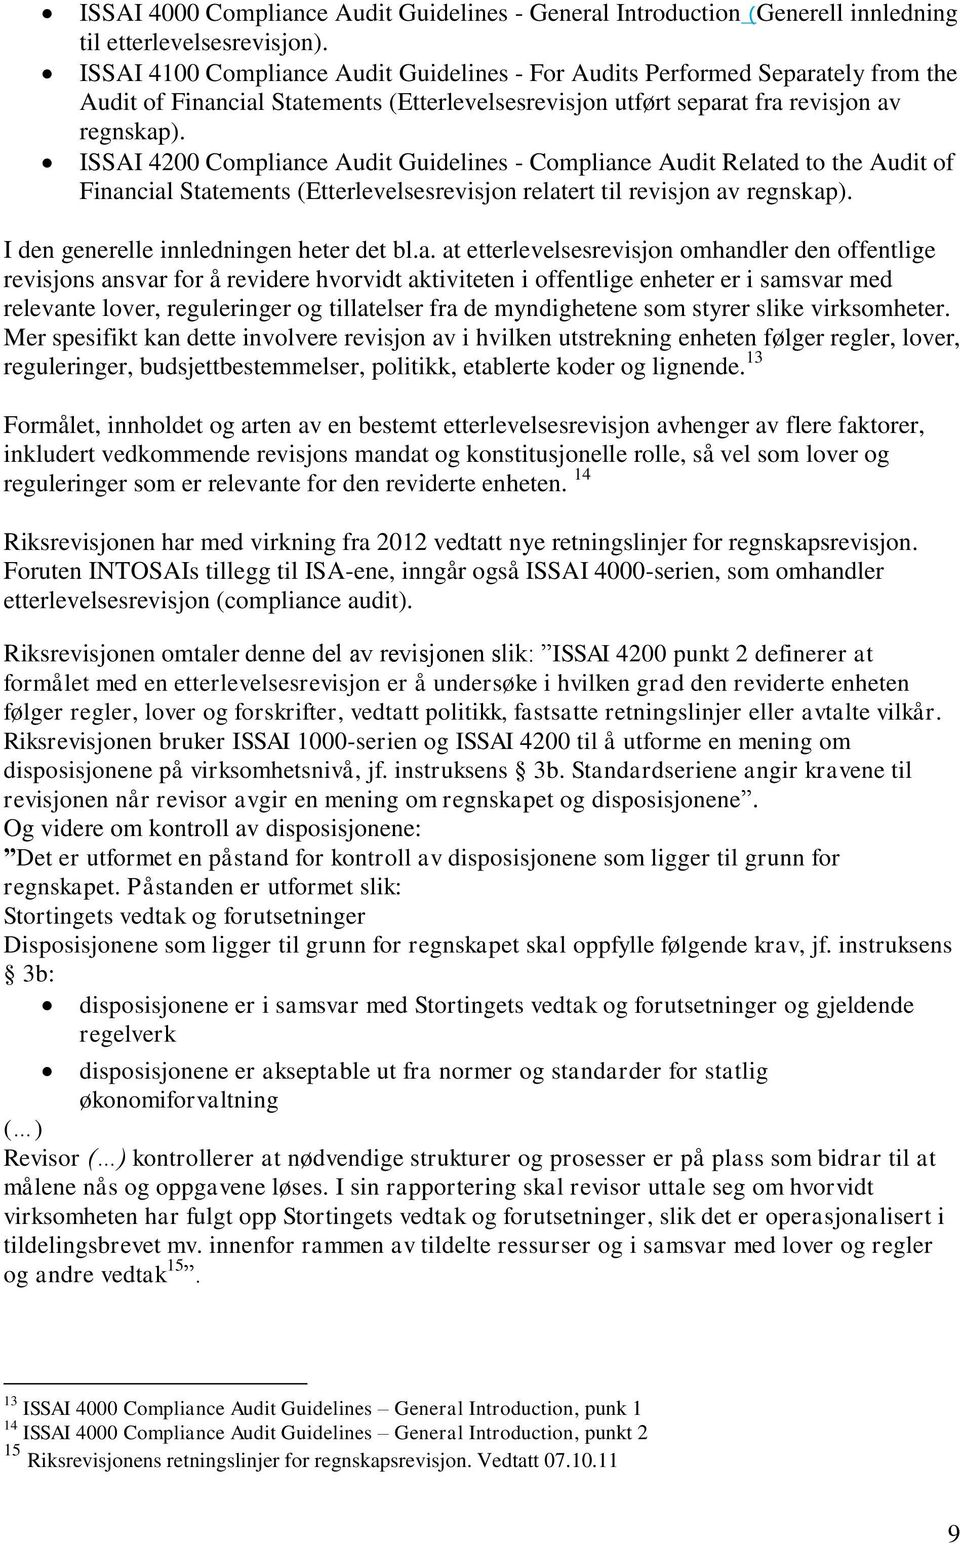 ISSAI 4200 Compliance Audit Guidelines - Compliance Audit Related to the Audit of Financial Statements (Etterlevelsesrevisjon relatert til revisjon av regnskap).